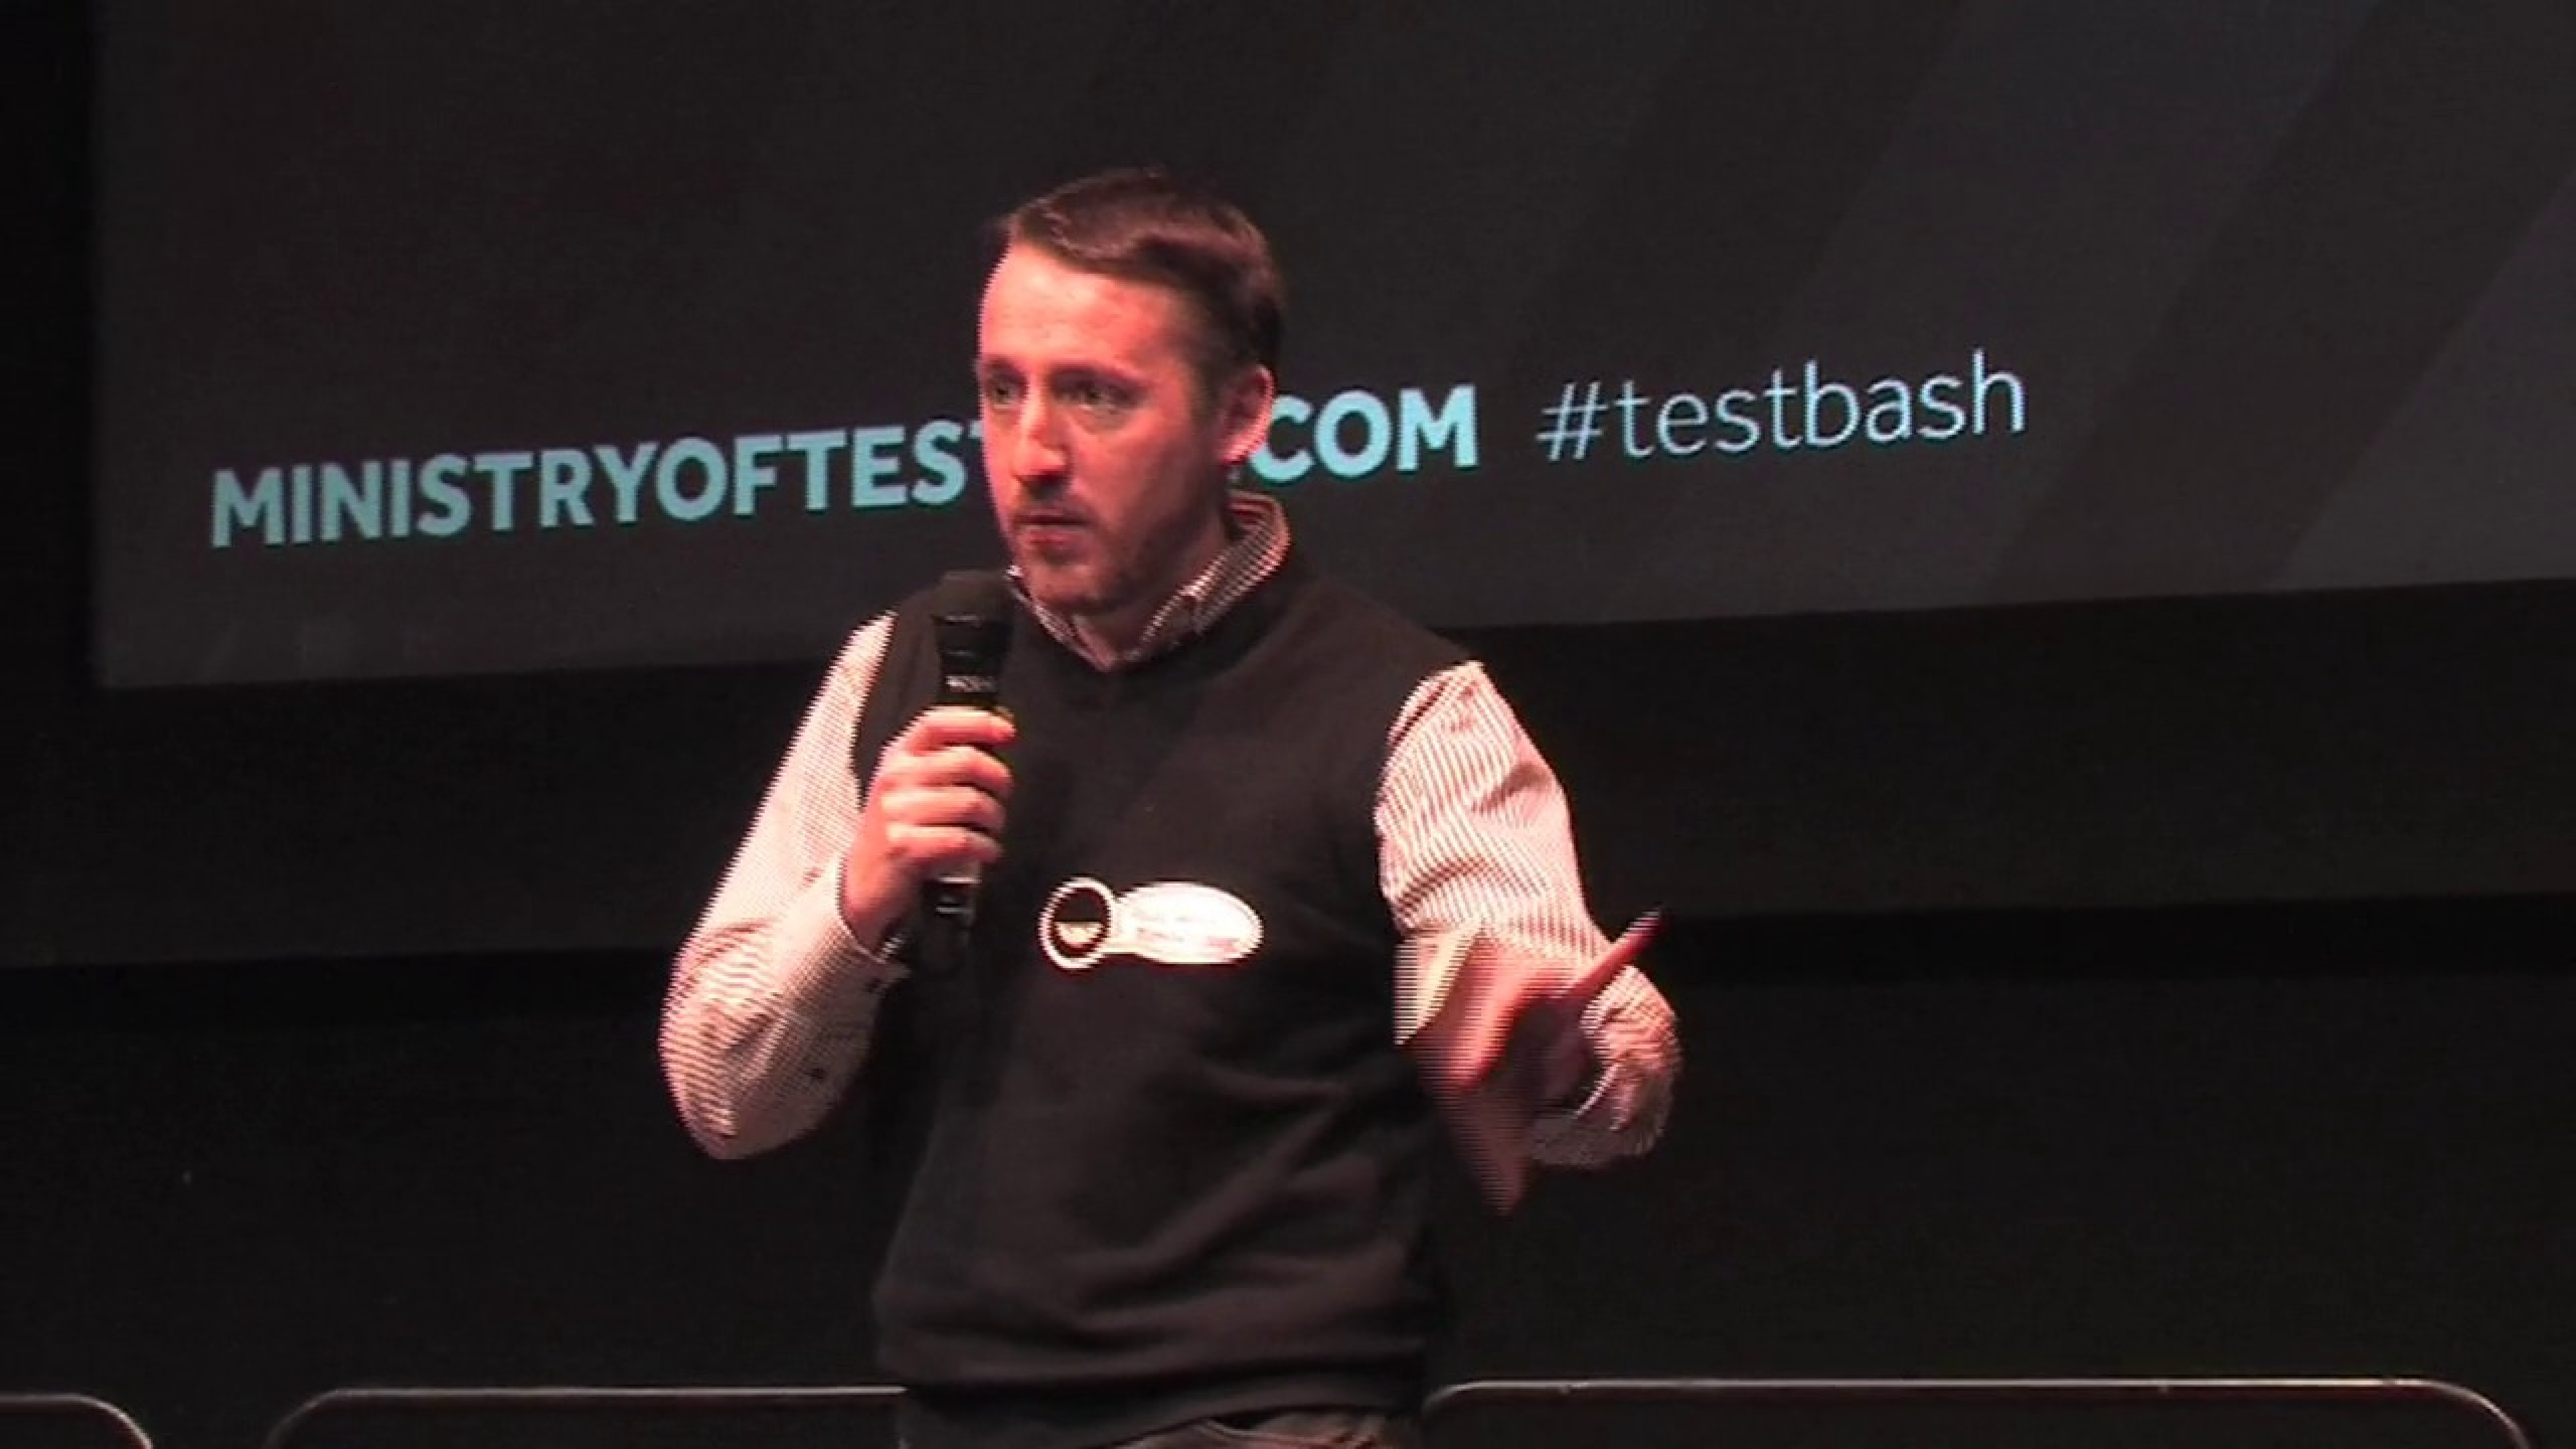 99 Second Talks - TestBash 2013